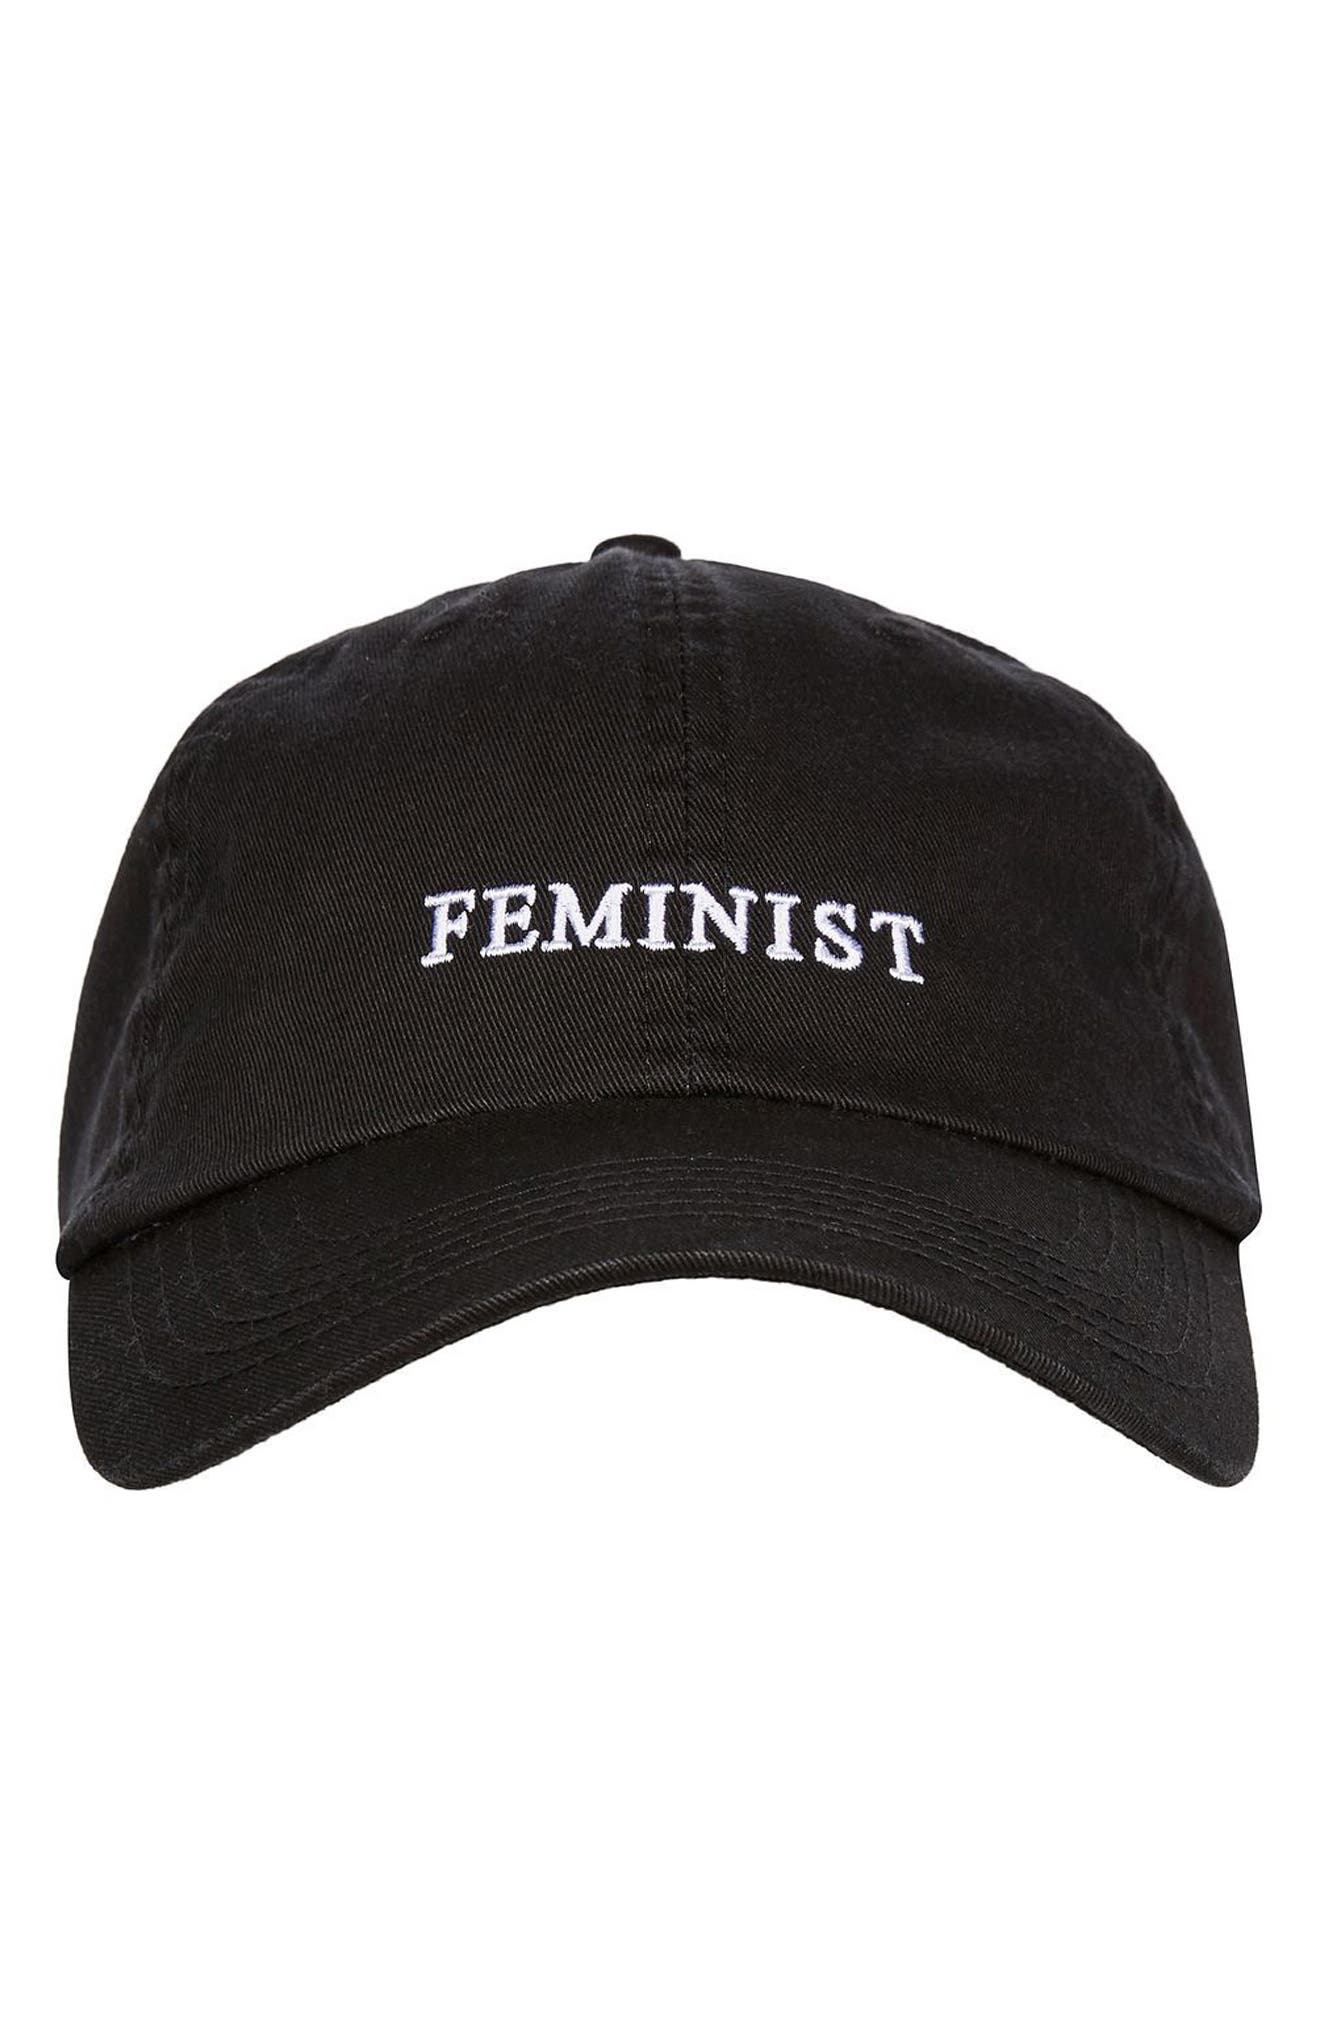 Feminist Baseball Cap,                             Alternate thumbnail 2, color,                             Black